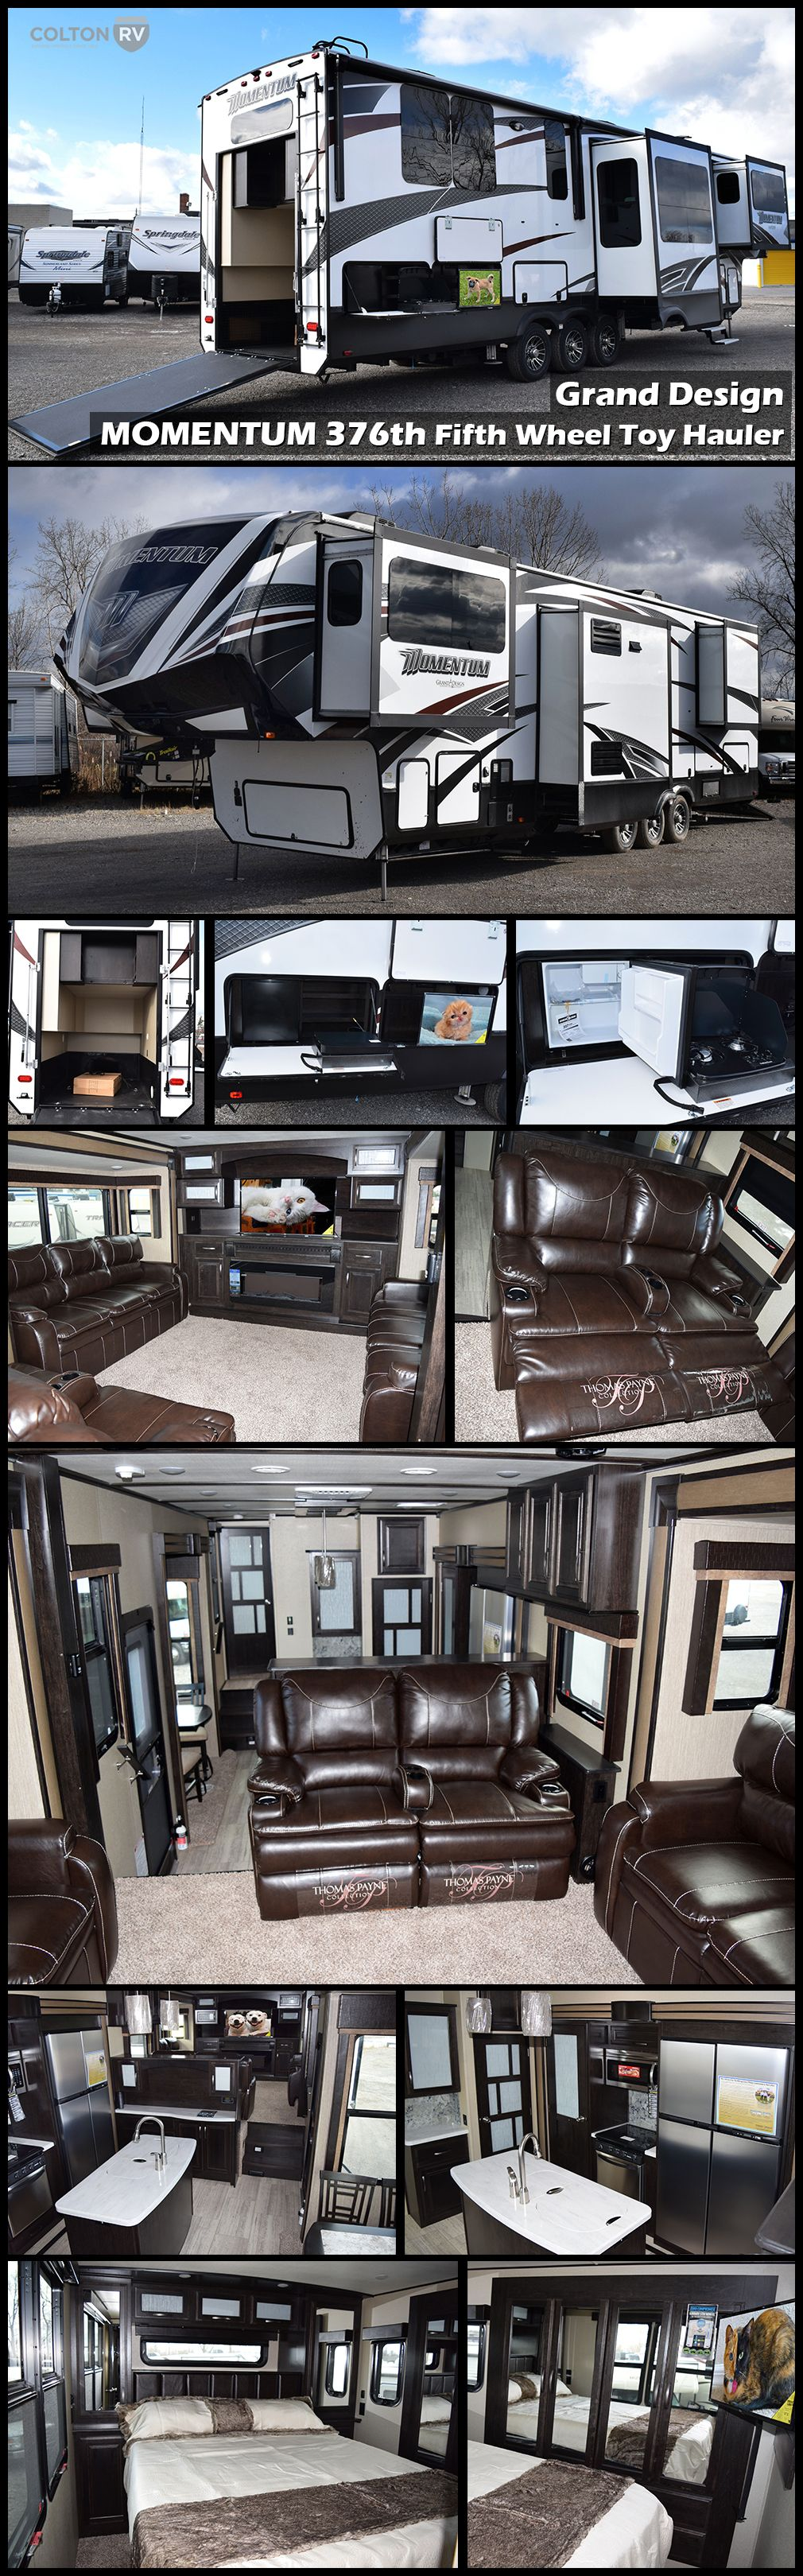 Master Bedroom Up Or Down this unique 2017 grand design momentum 376th fifth wheel toy